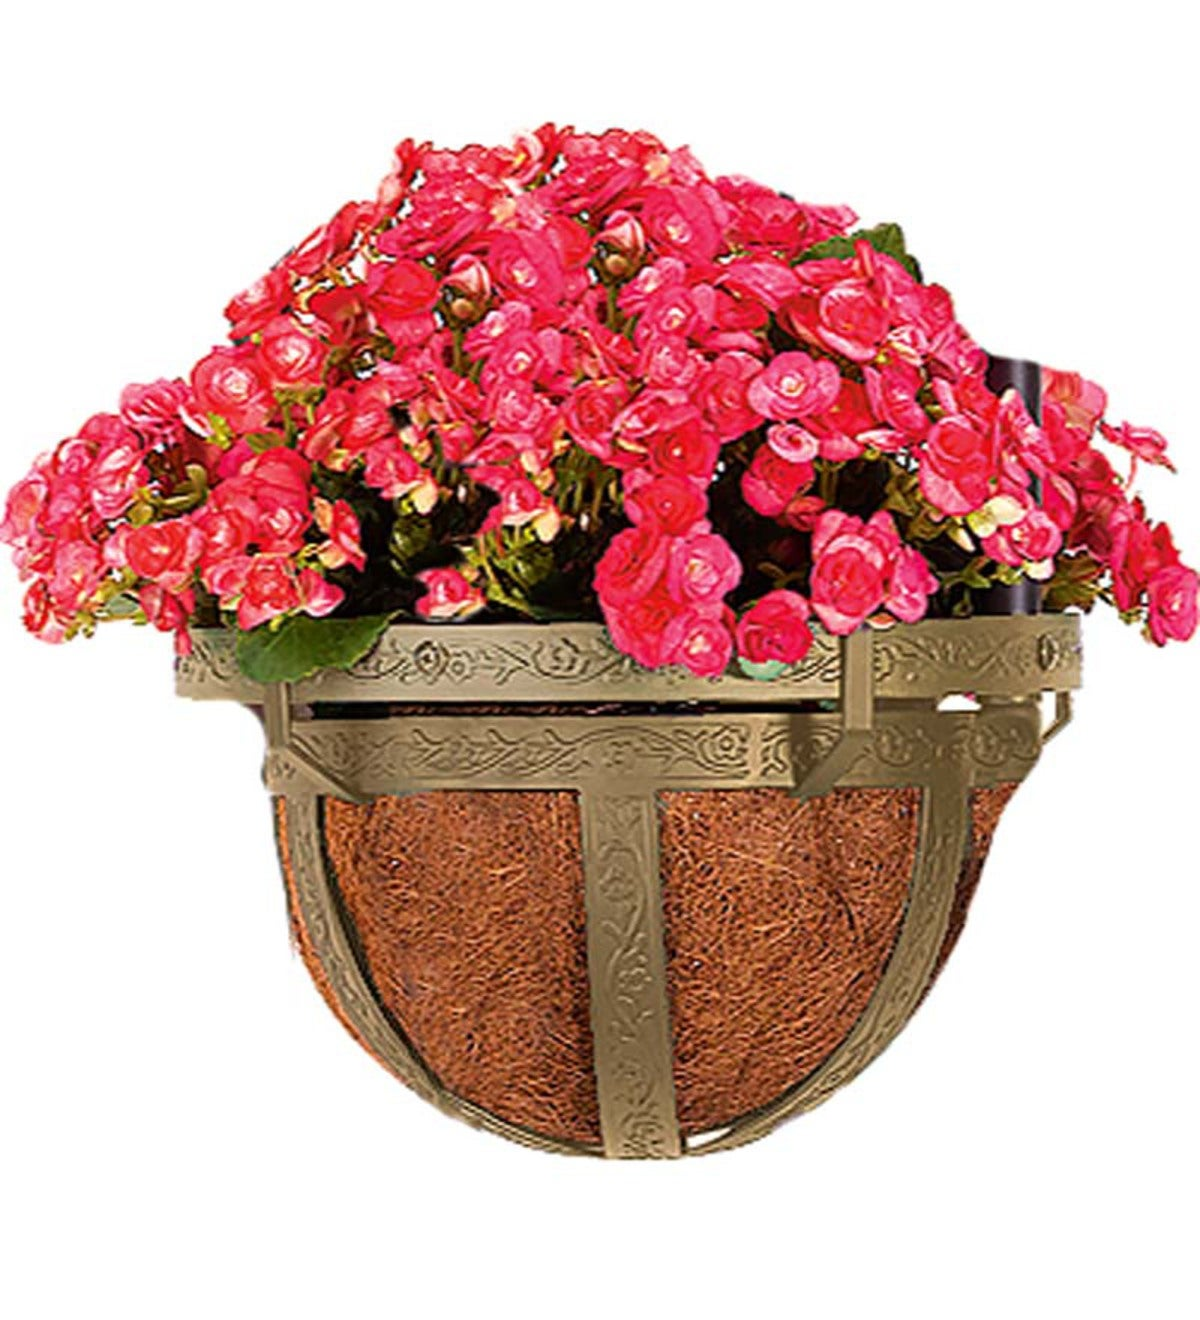 Coco-Lined Basket Planter For 8' Steel Garden Obelisk